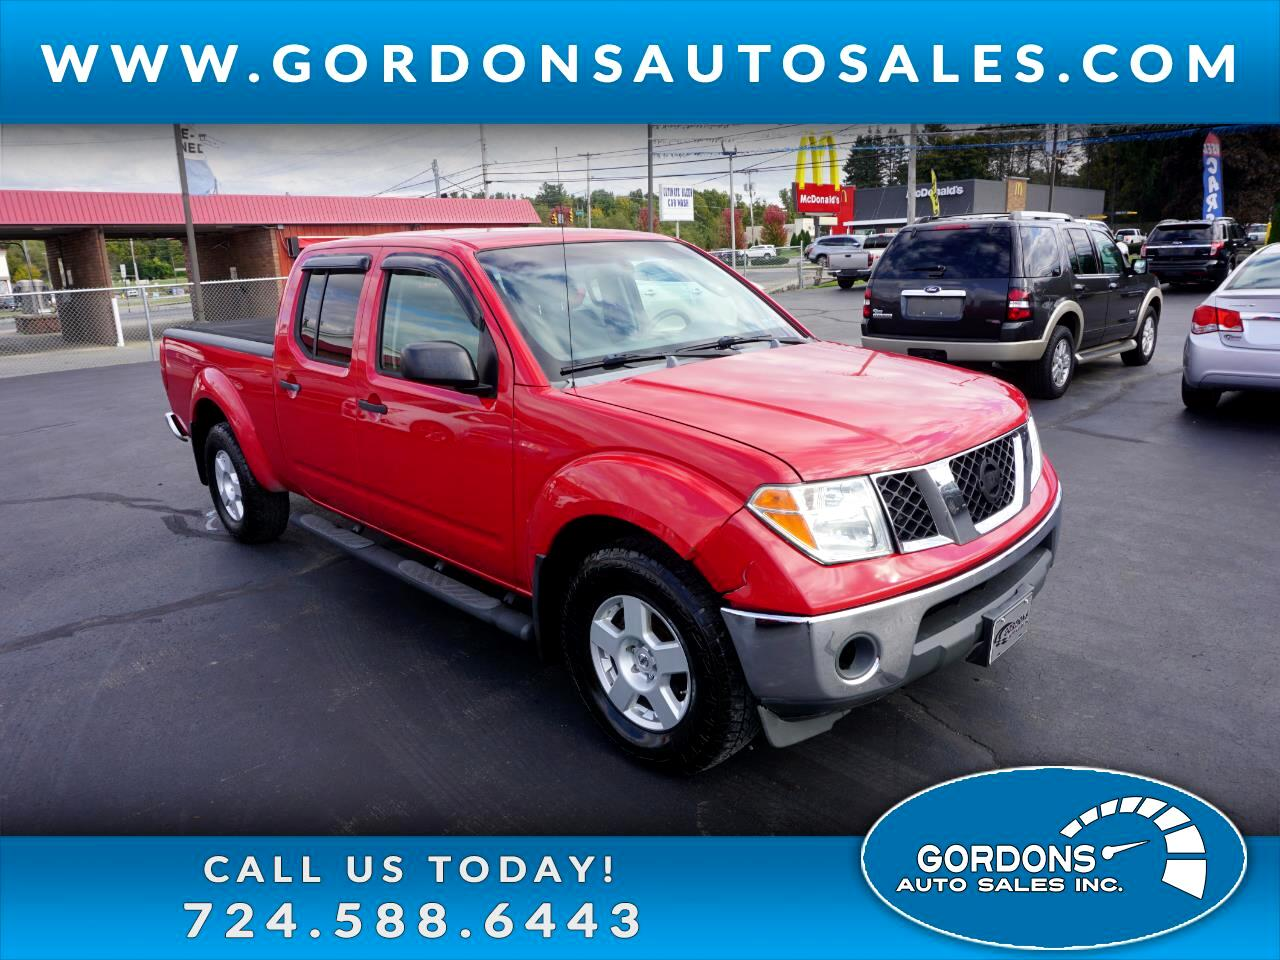 2007 Nissan Frontier 4WD Crew Cab LWB Auto SE *Late Avai